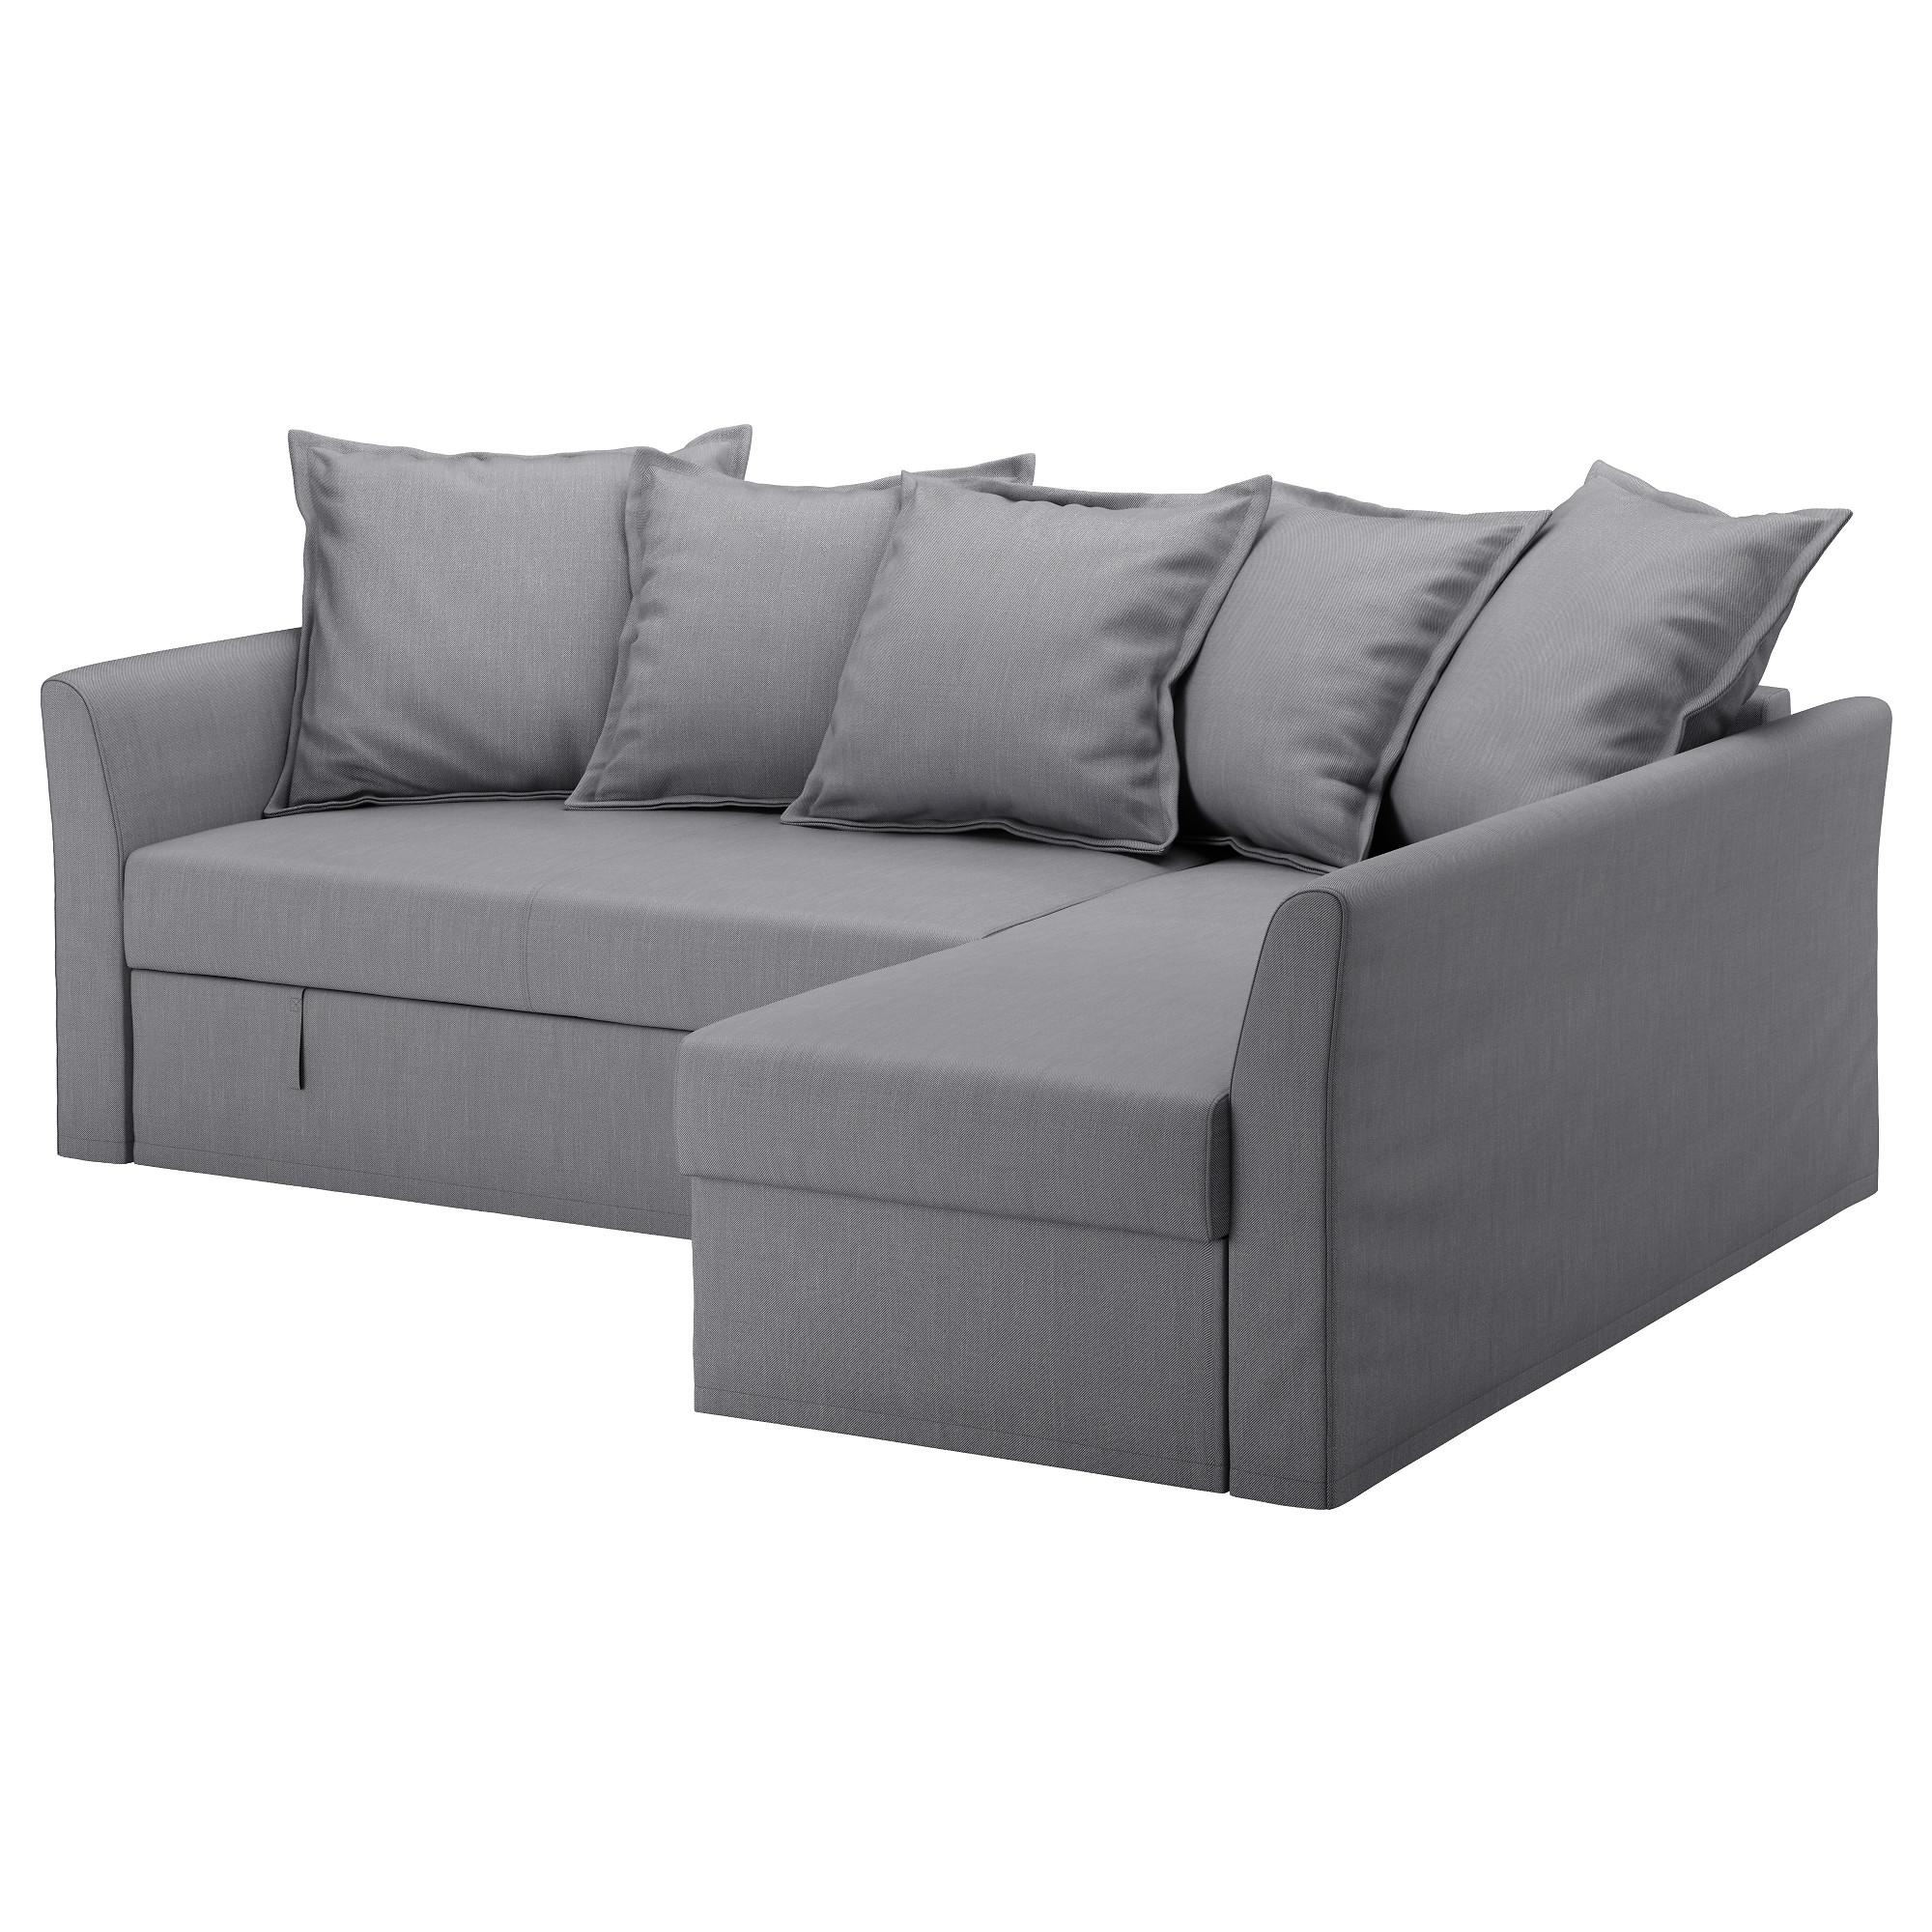 Holmsund Cover For Sleeper Sectional, 3 Seat – Nordvalla Medium Regarding Sofa Bed Sleepers (Image 8 of 20)